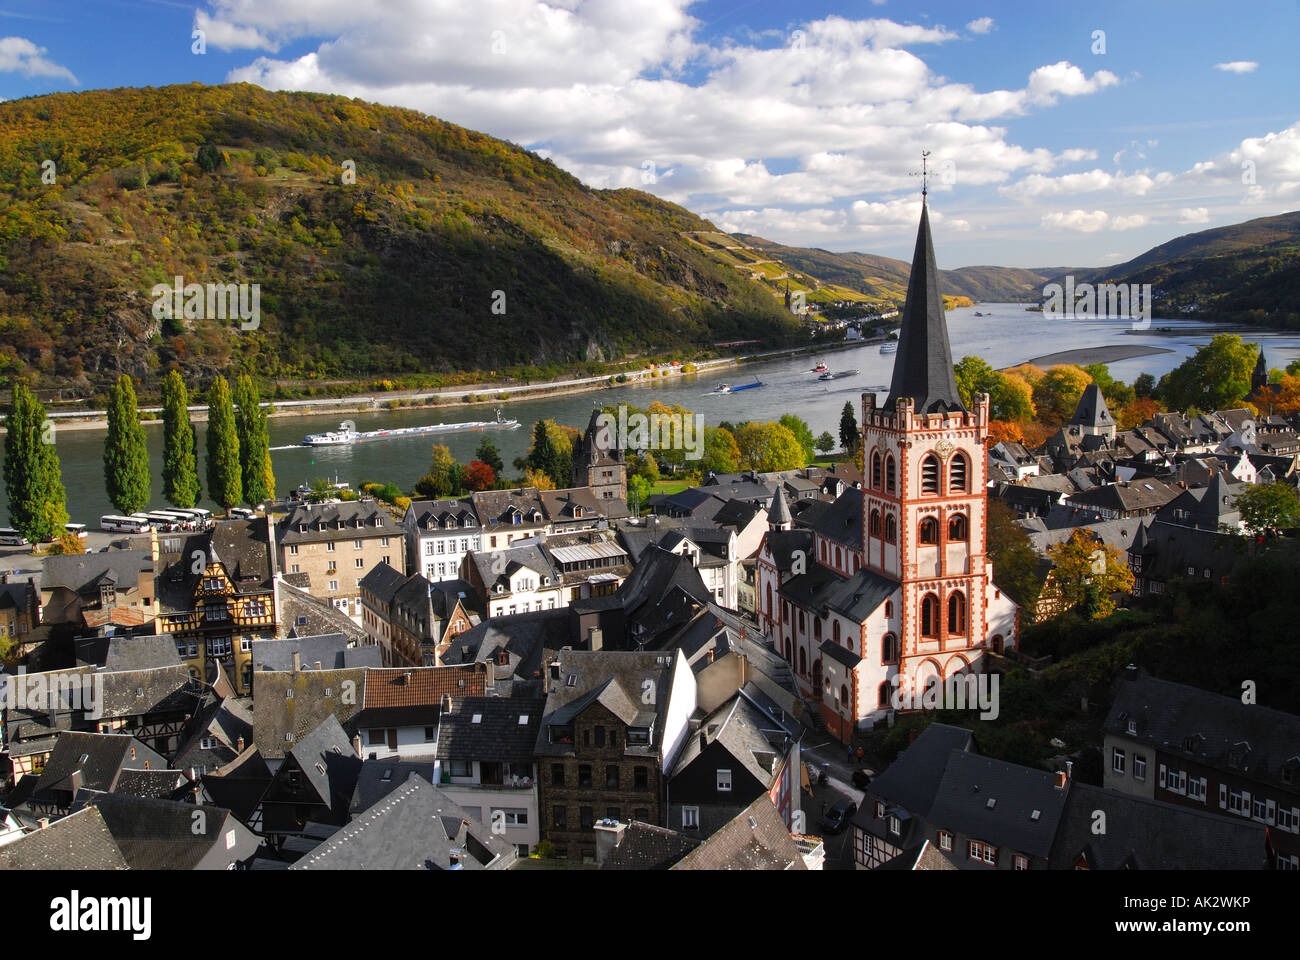 Rhine valley town of Bacharach, St. Peter's Church, Germany Stock Photo